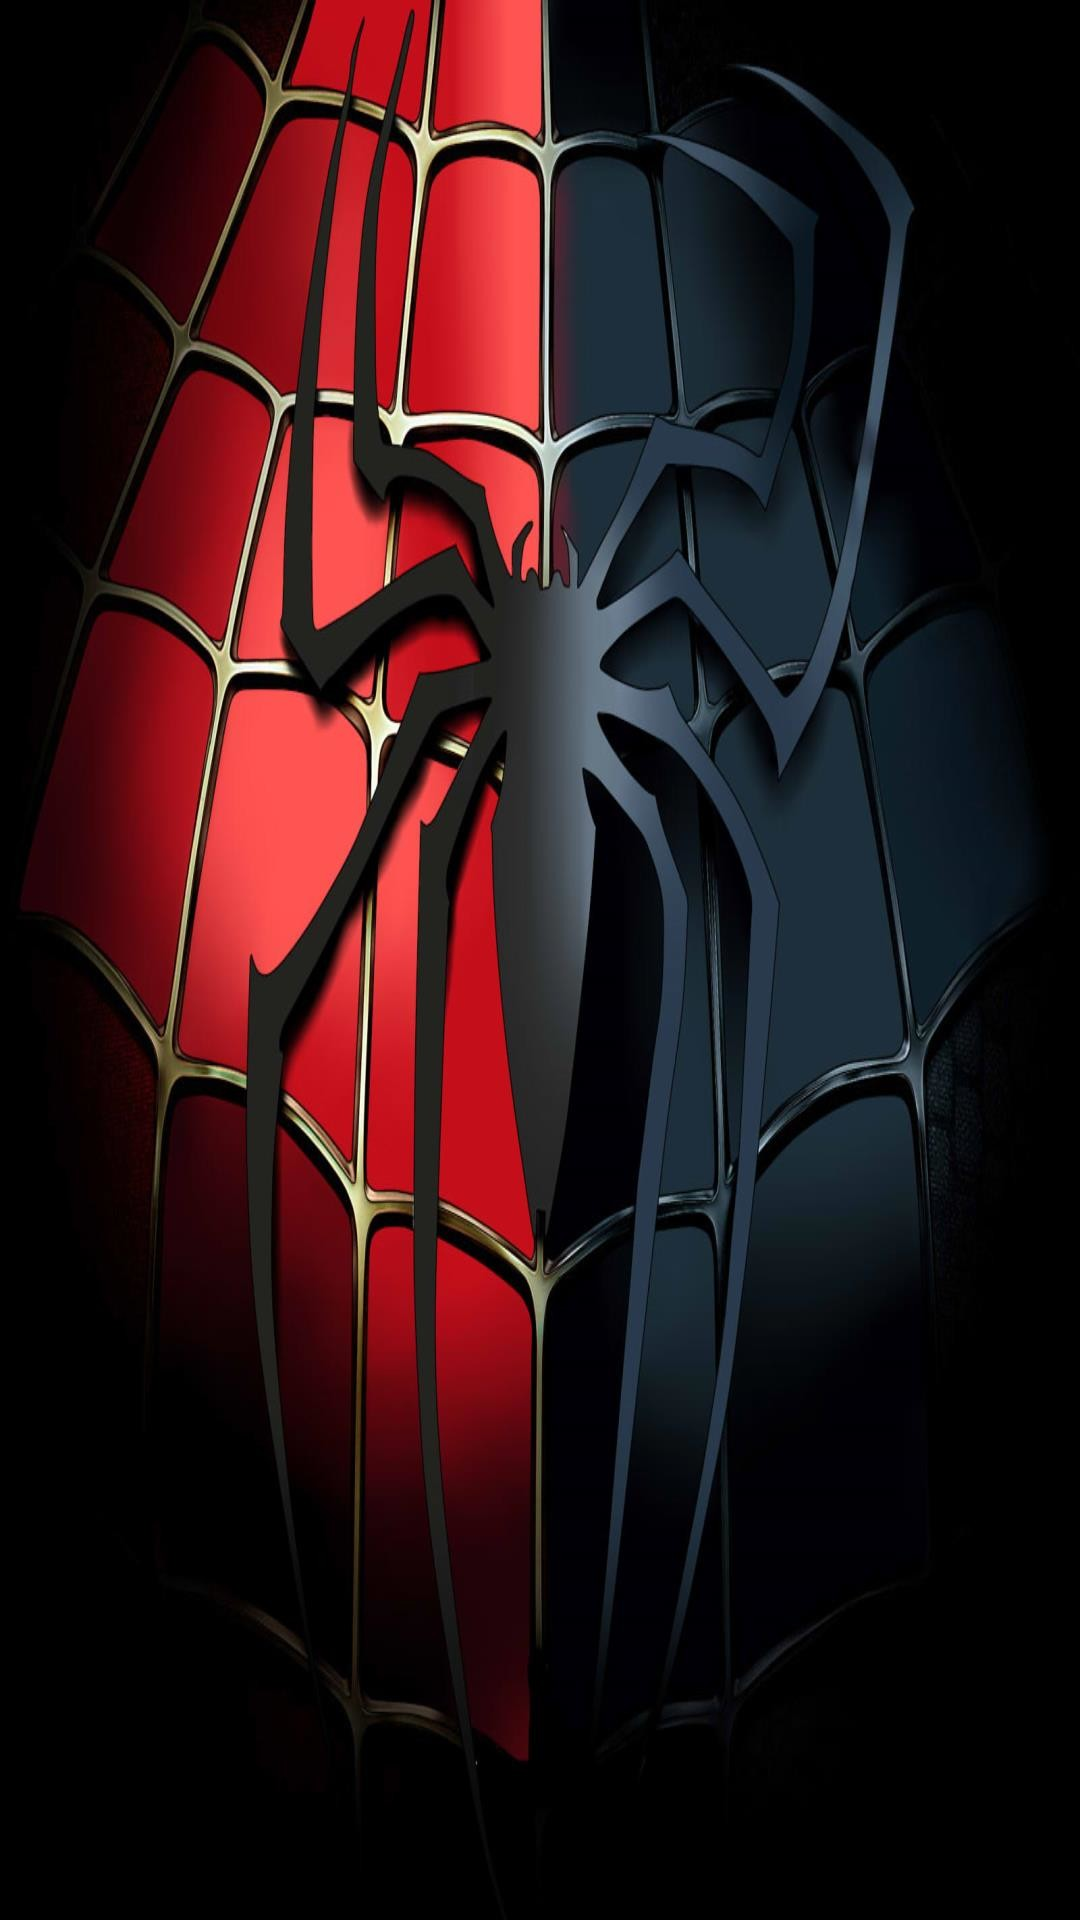 Spiderman Logo Wallpaper 67 images 1080x1920